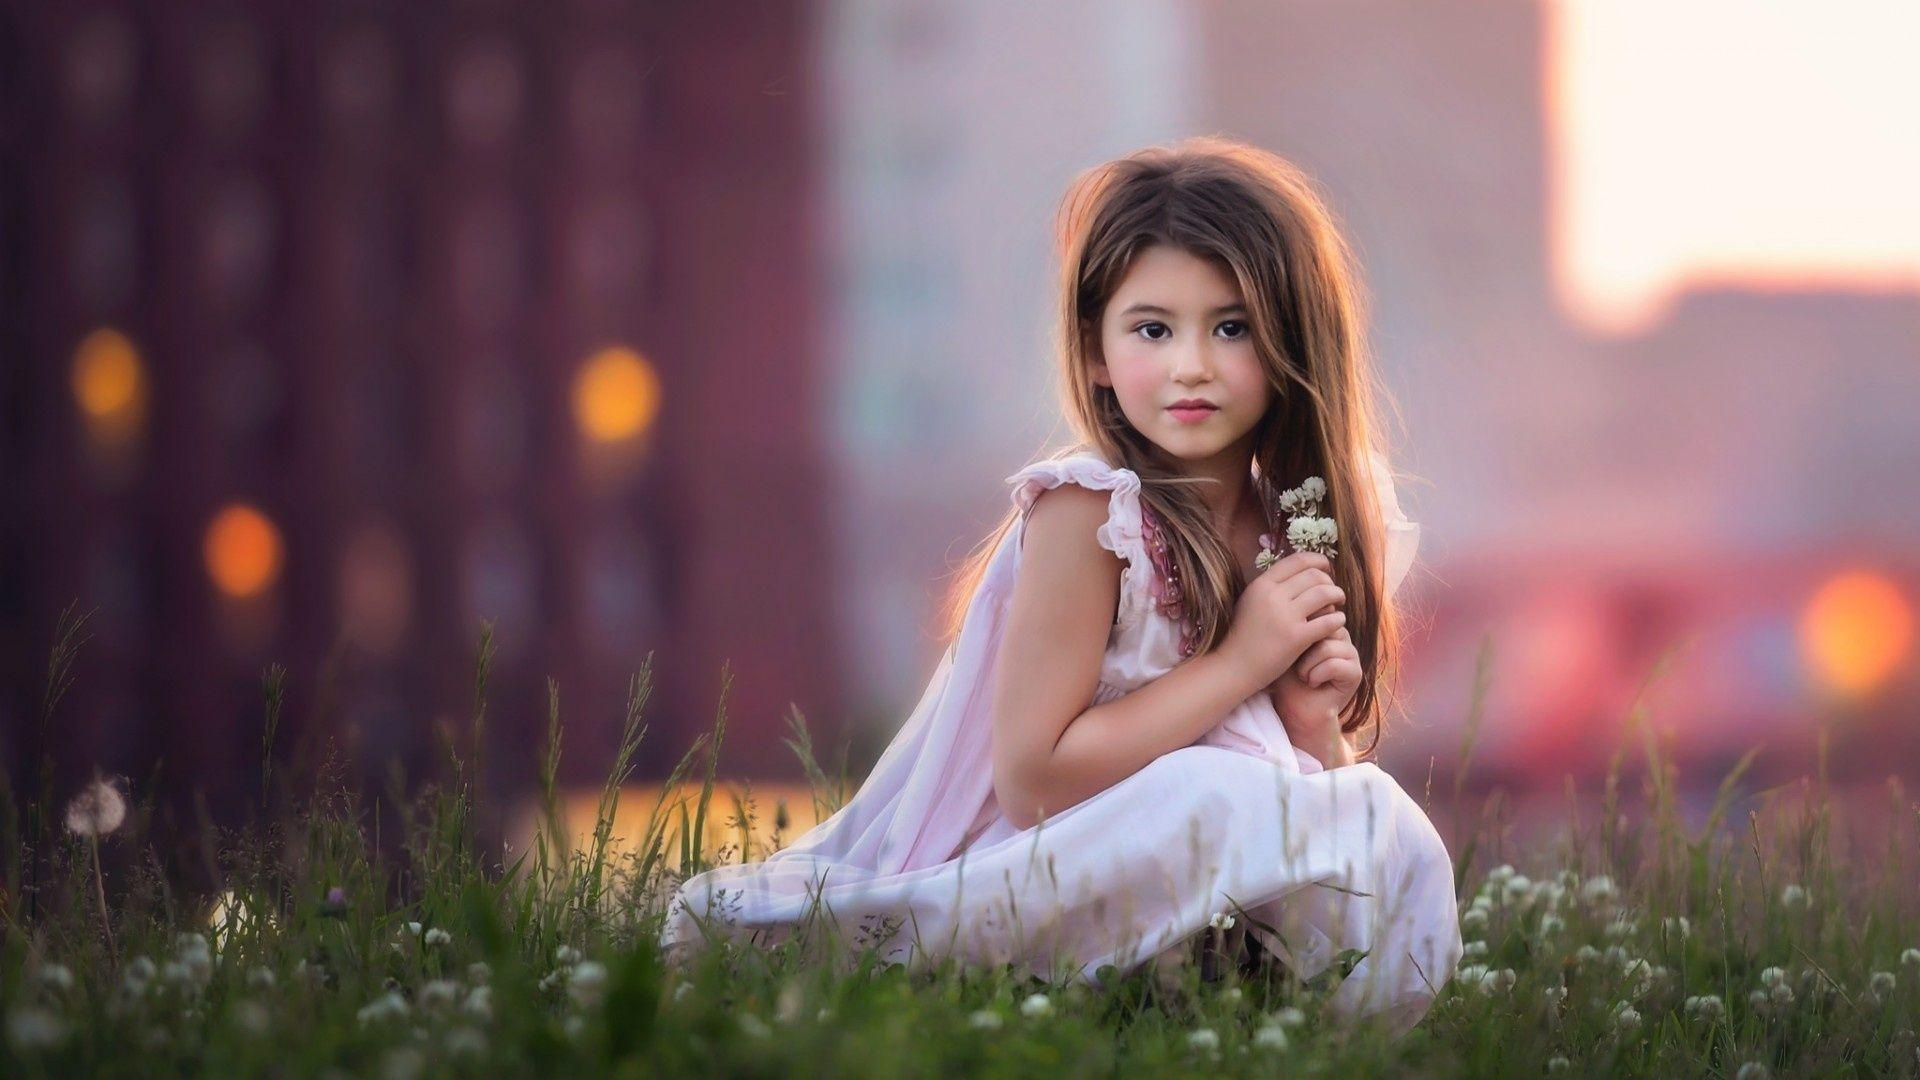 little girls wallpapers - wallpaper cave